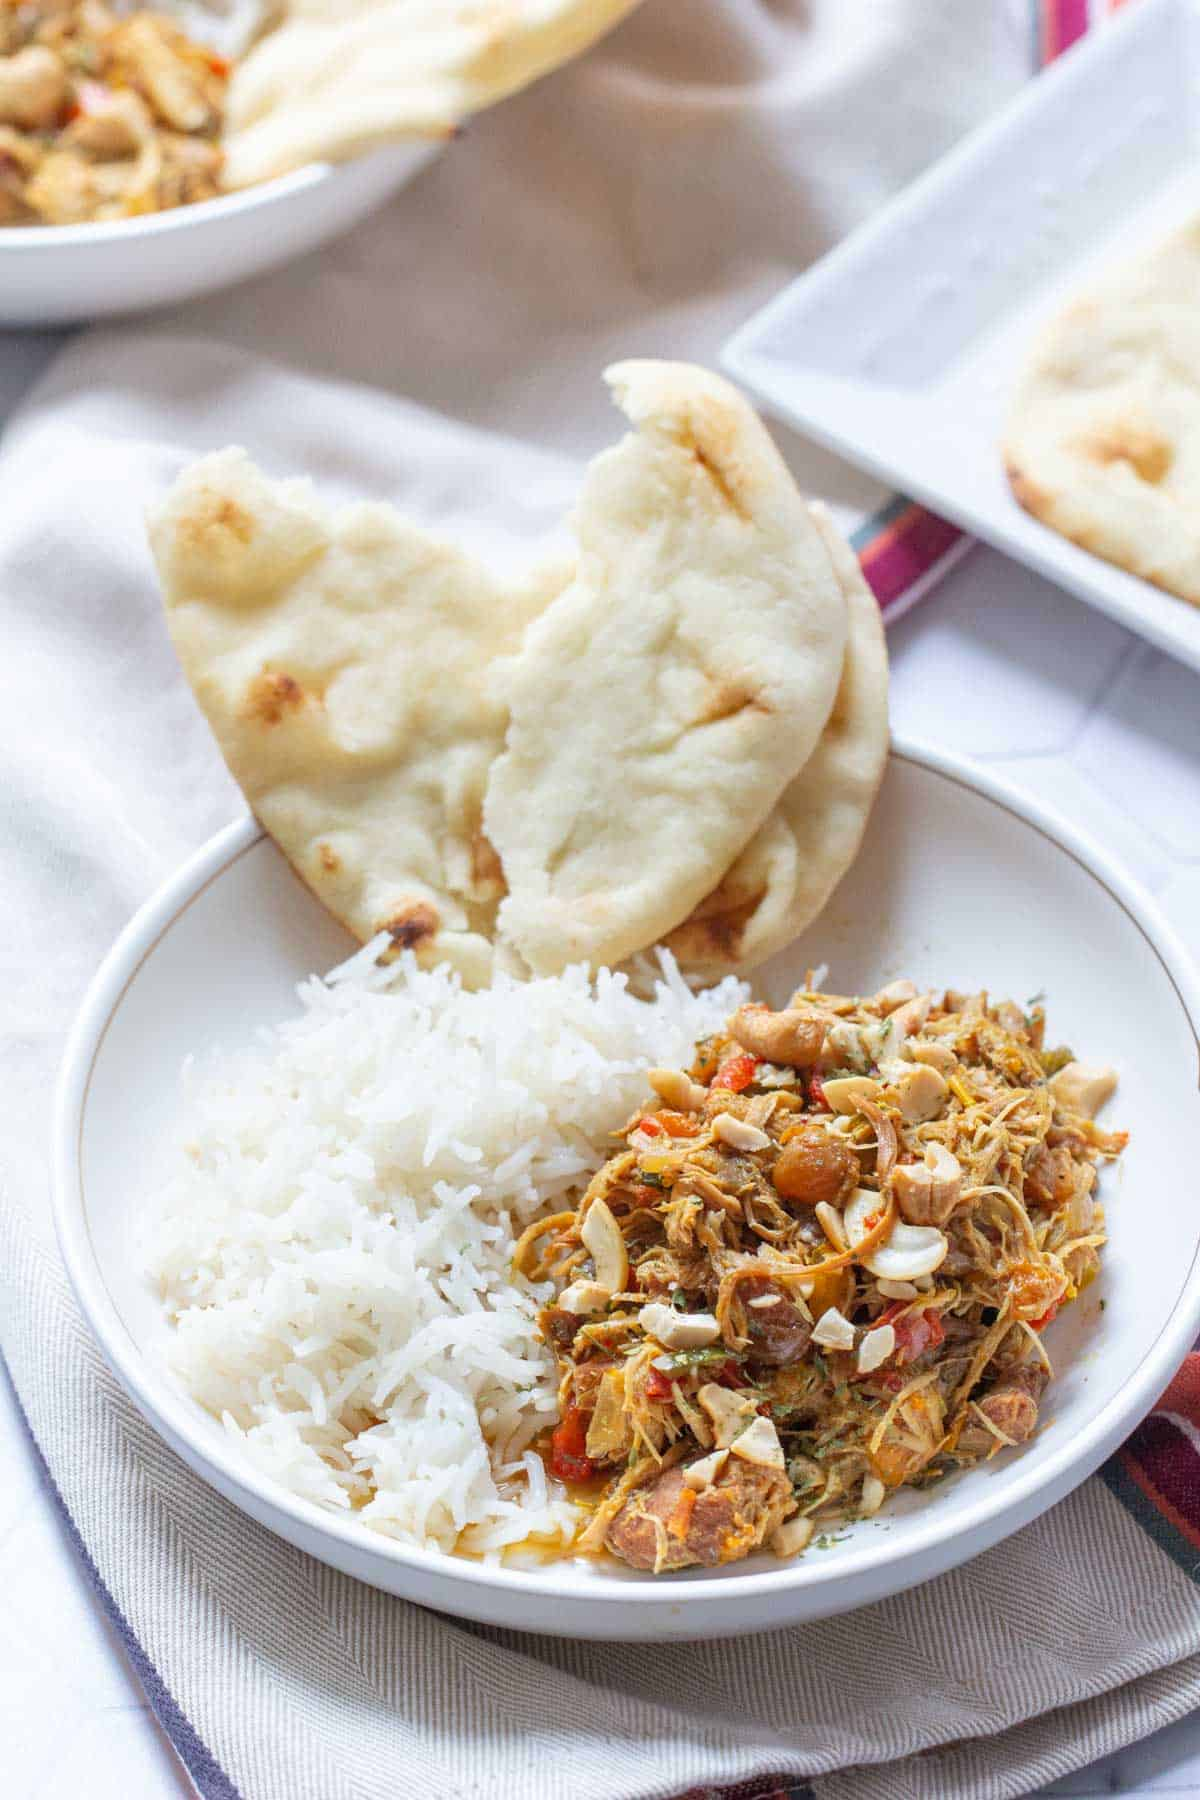 bowl of curried chicken with rice and naan